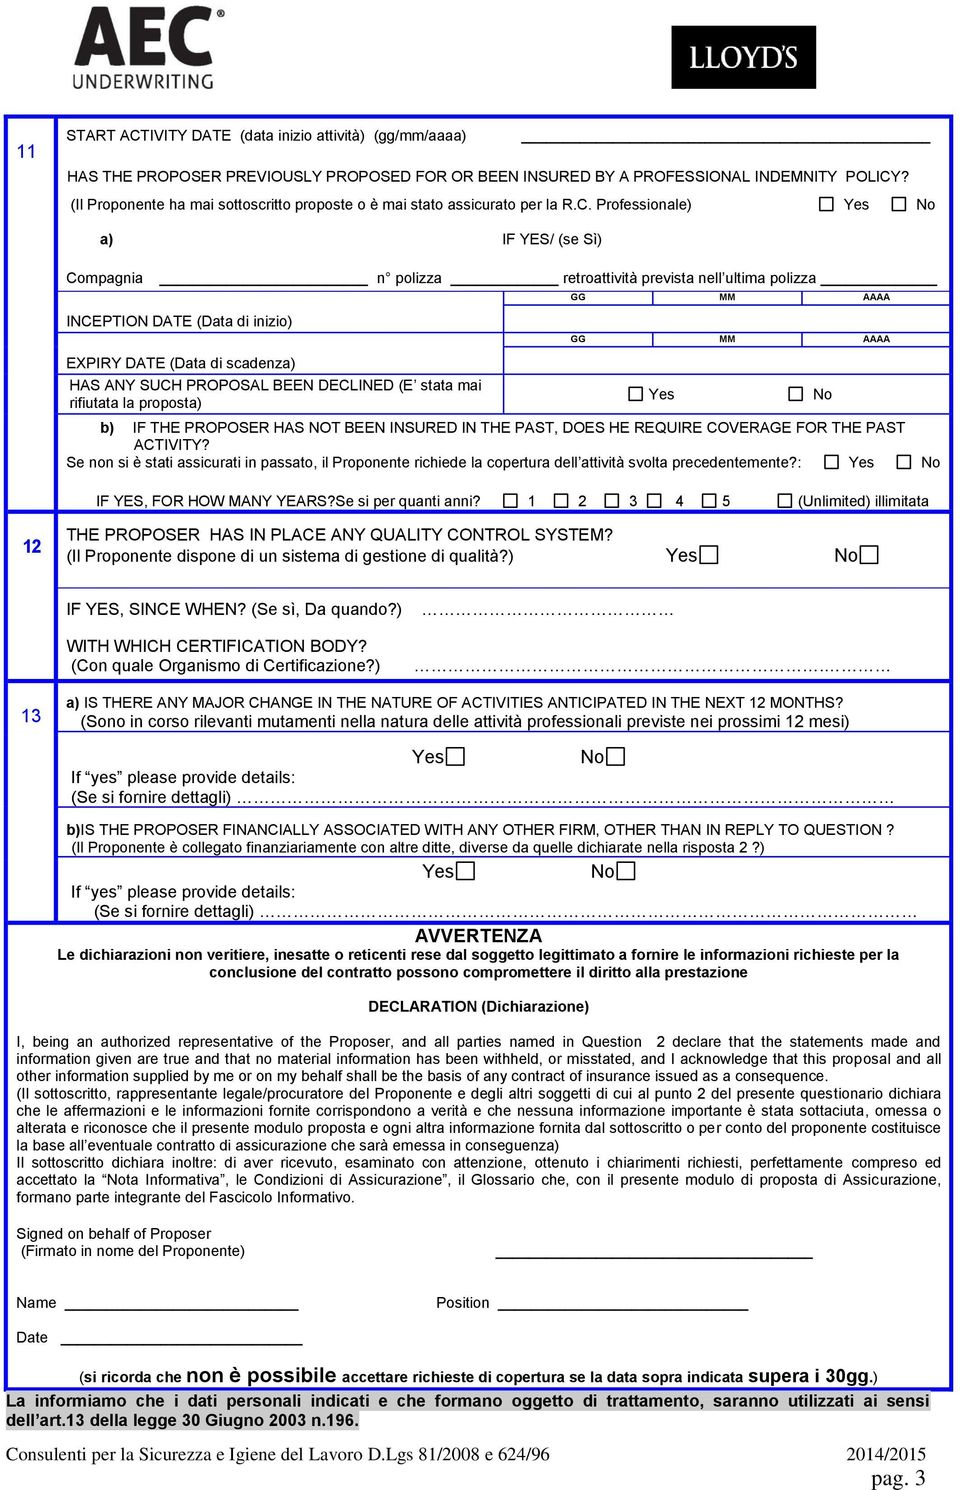 Professionale) a) IF YES/ (se Sì) Compagnia n polizza retroattività prevista nell ultima polizza INCEPTION DATE (Data di inizio) EXPIRY DATE (Data di scadenza) HAS ANY SUCH PROPOSAL BEEN DECLINED (E